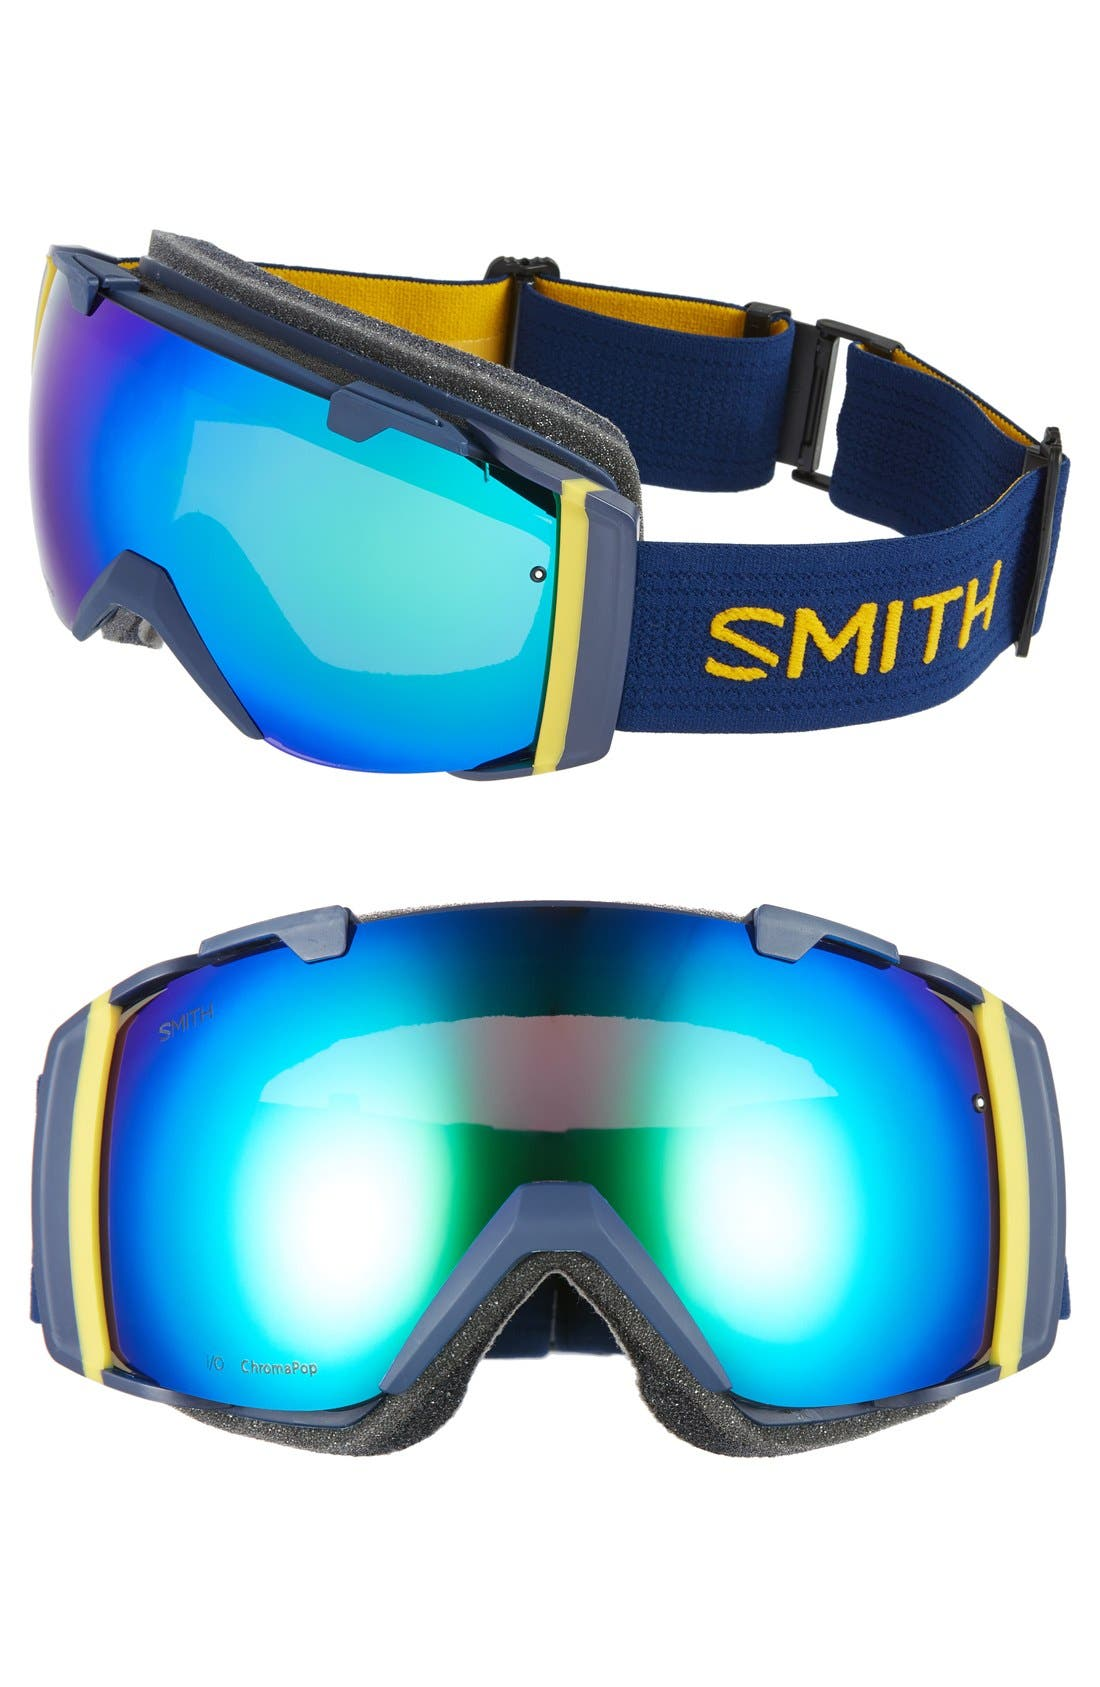 I/O 205mm Snow Goggles,                         Main,                         color, Navy Scout